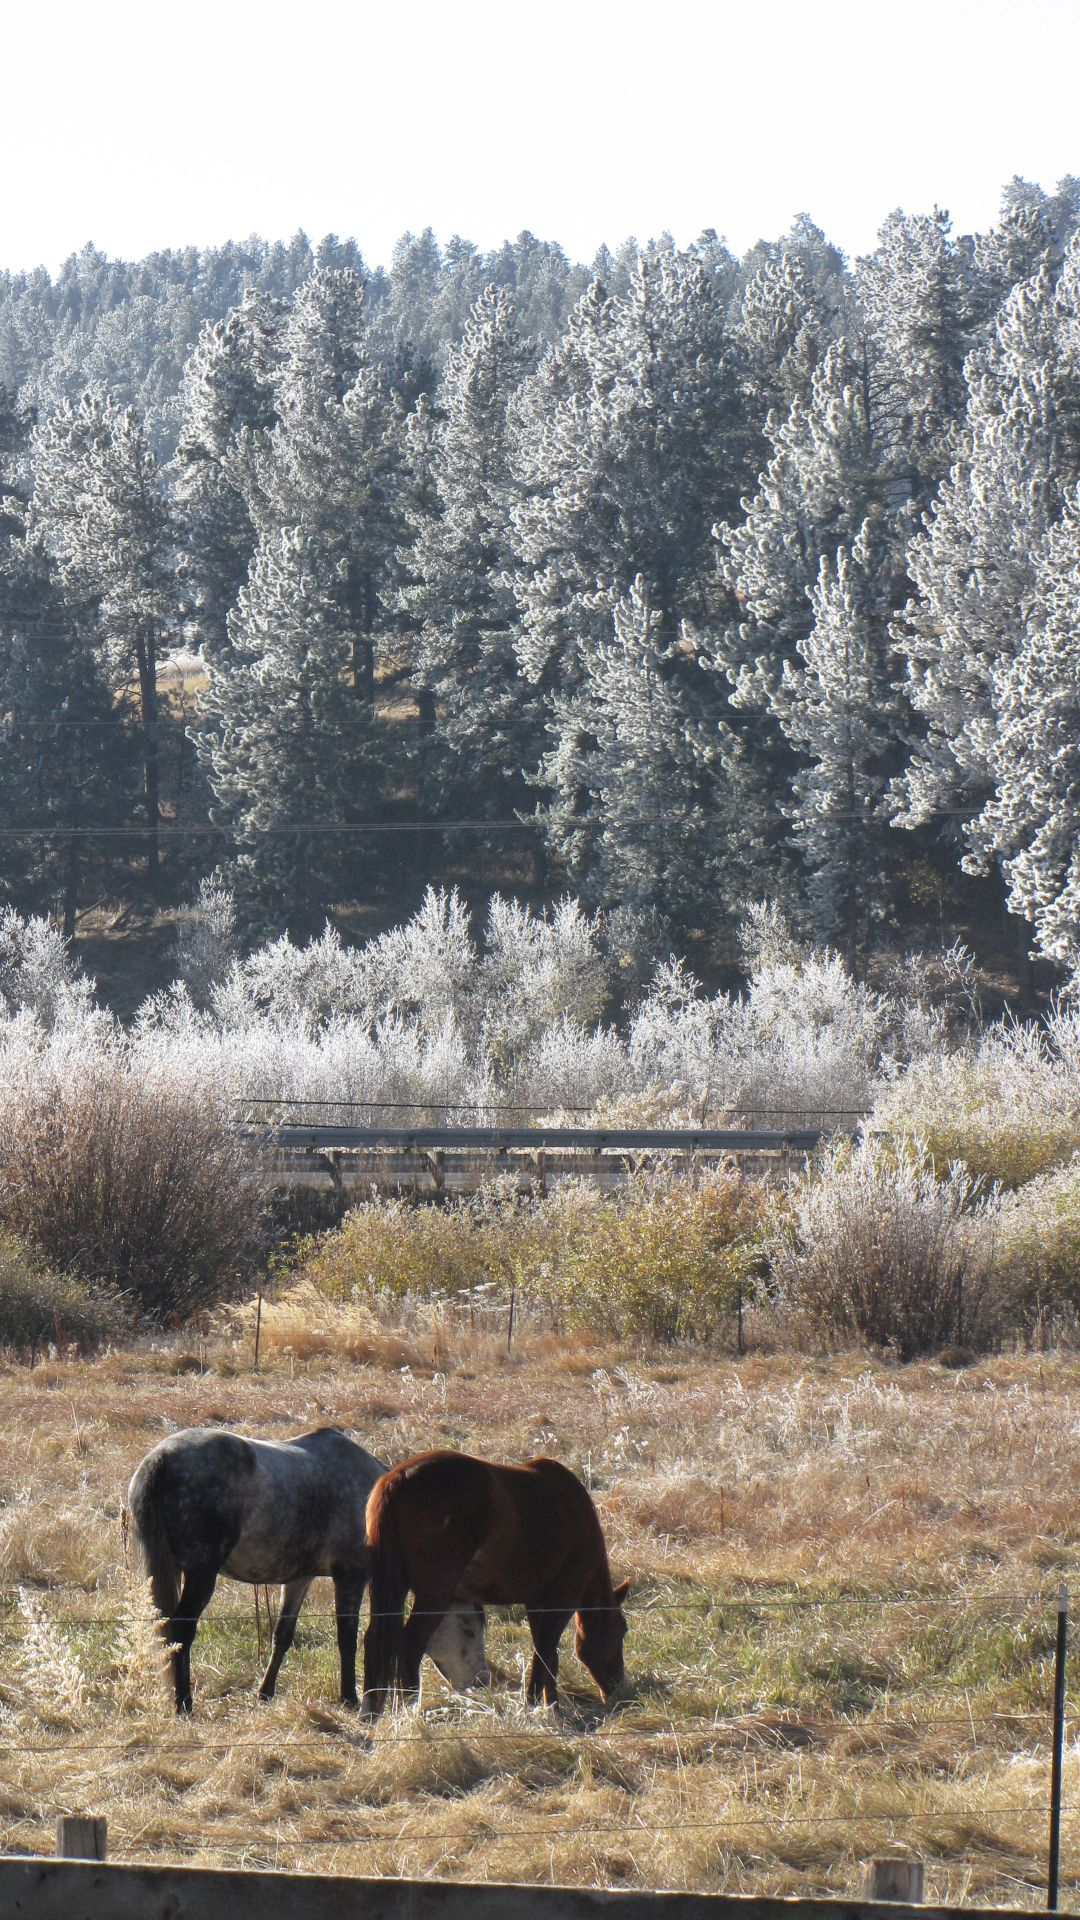 Nr Bailey, CO, USA - hossies brave the cool morning